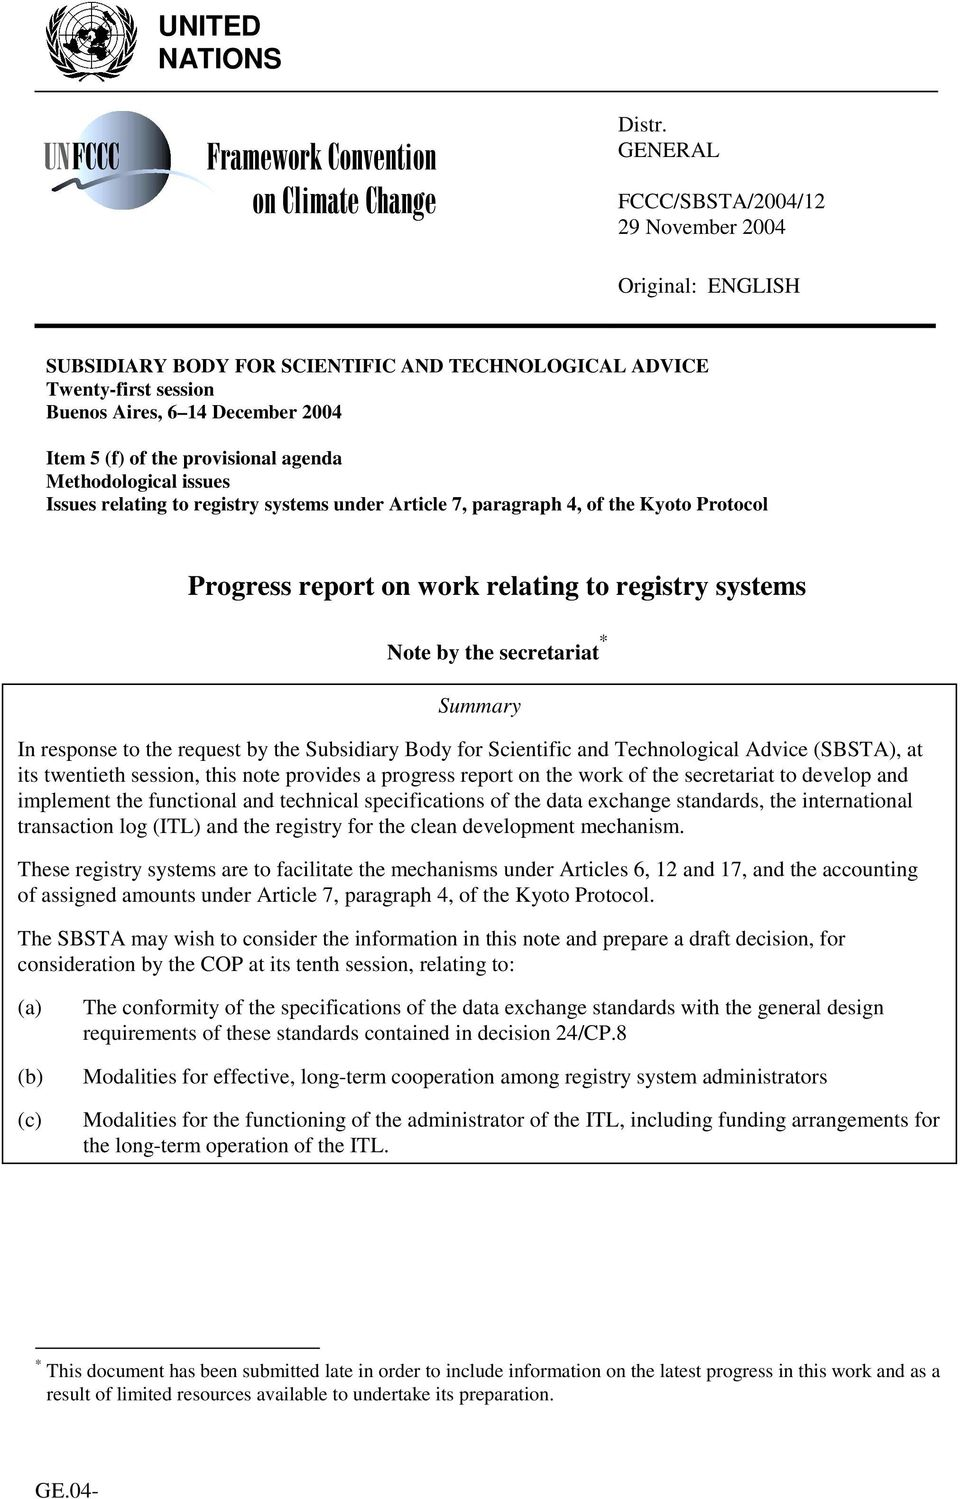 provisional agenda Methodological issues Issues relating to registry systems under Article 7, paragraph 4, of the Kyoto Protocol Progress report on work relating to registry systems Note by the